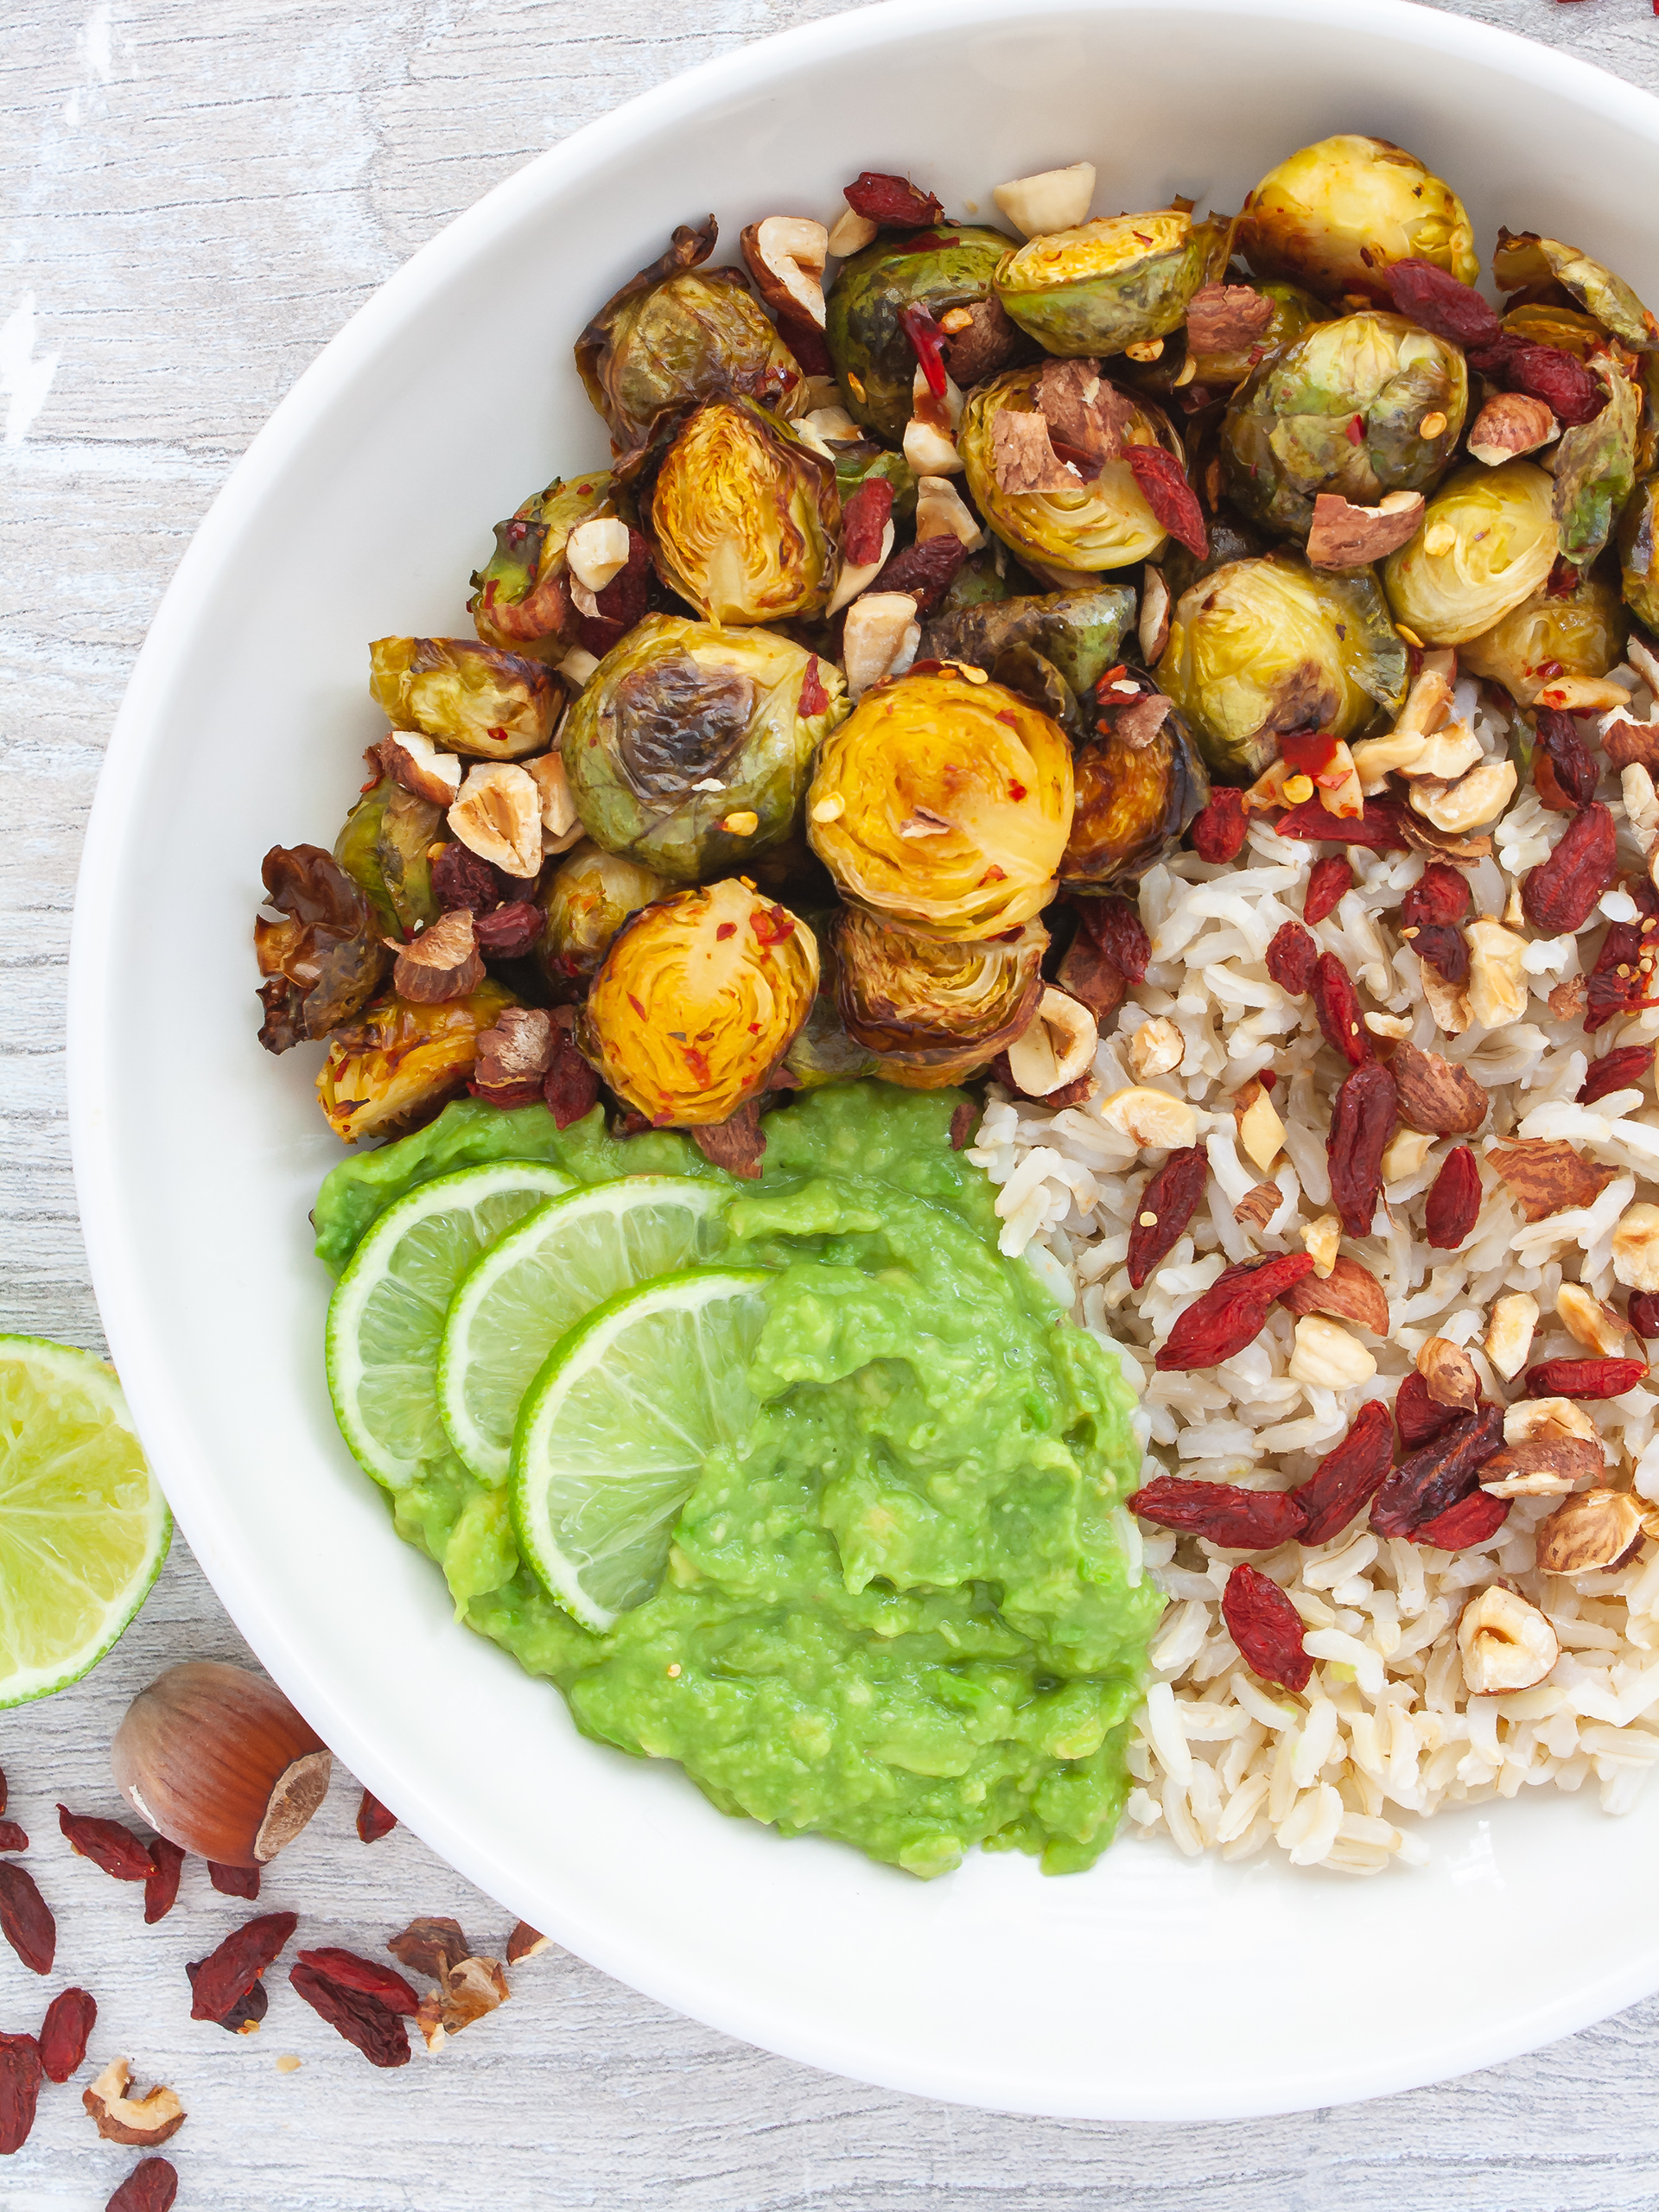 Chili Lime Roasted Brussel Sprouts with Avocado Dressing  Preview